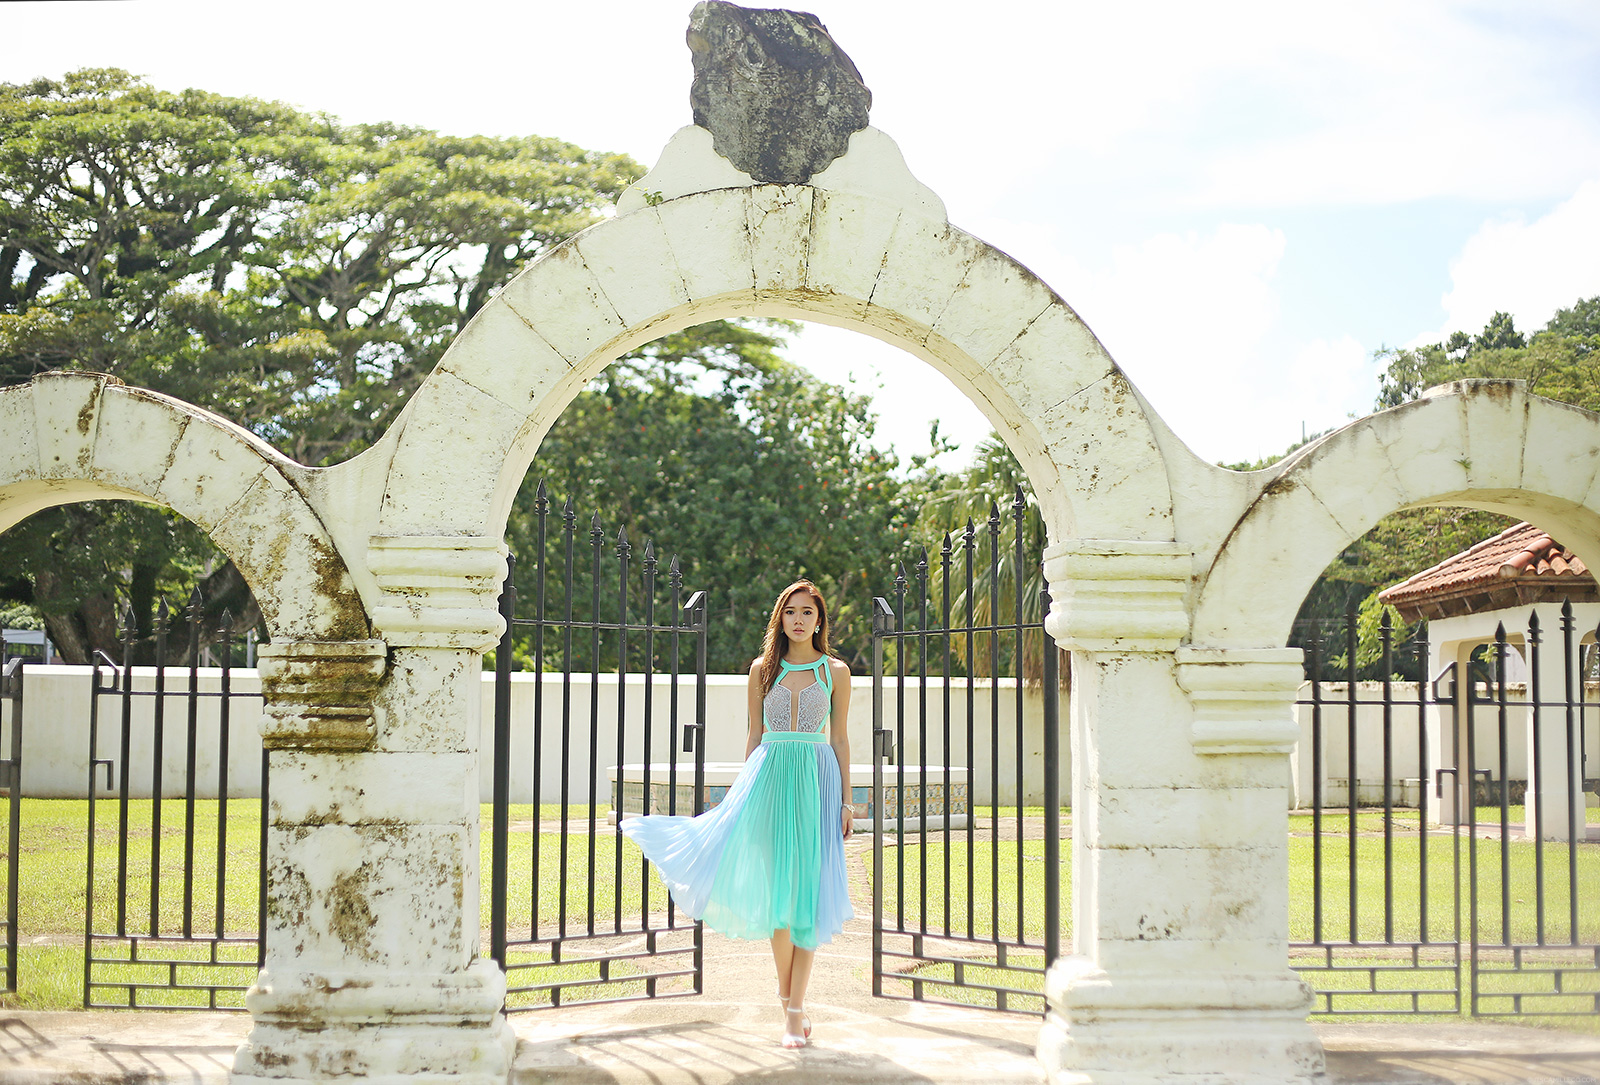 Plaza De Espana Guam, She Inside Dress | www.itscamilleco.com